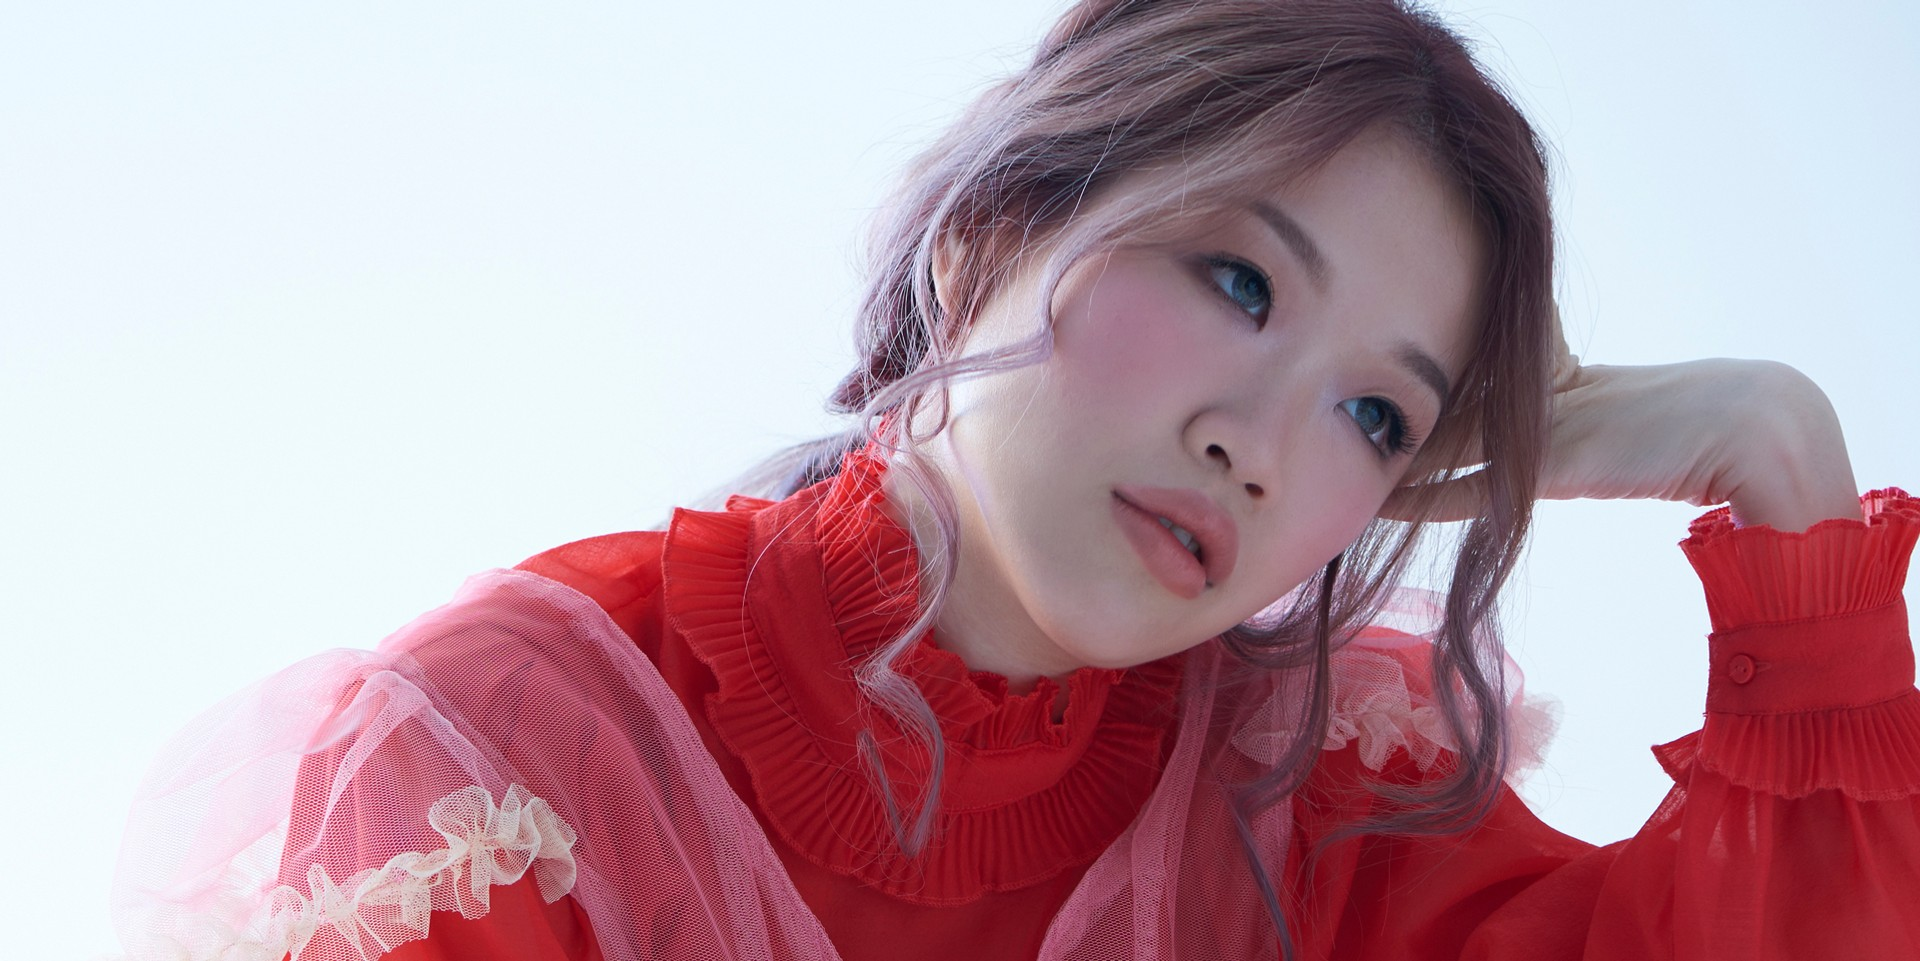 Linying shines on a new track by Yaffle, 'Summer' –listen